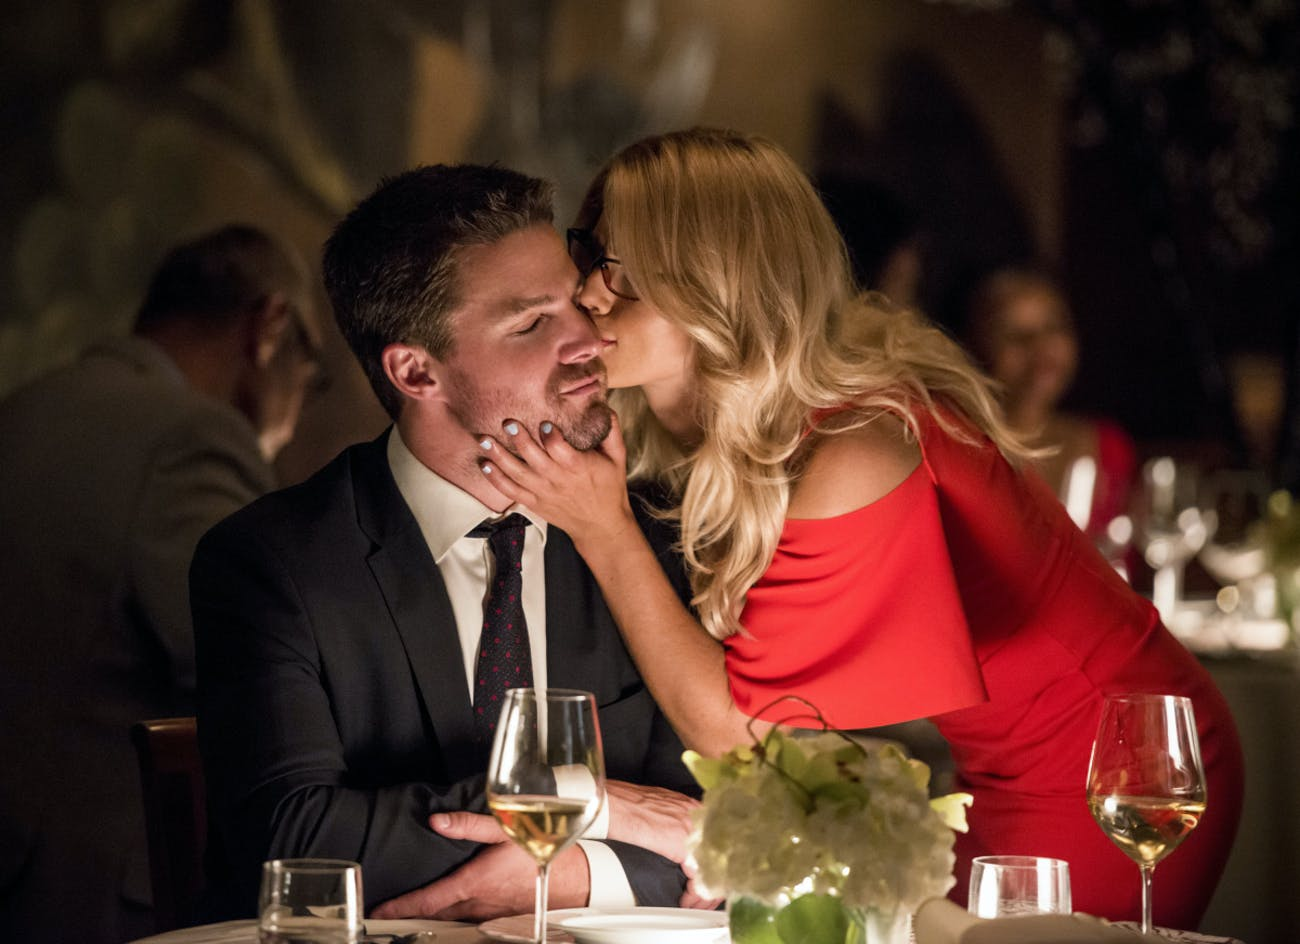 Arrow Olicity Felicity